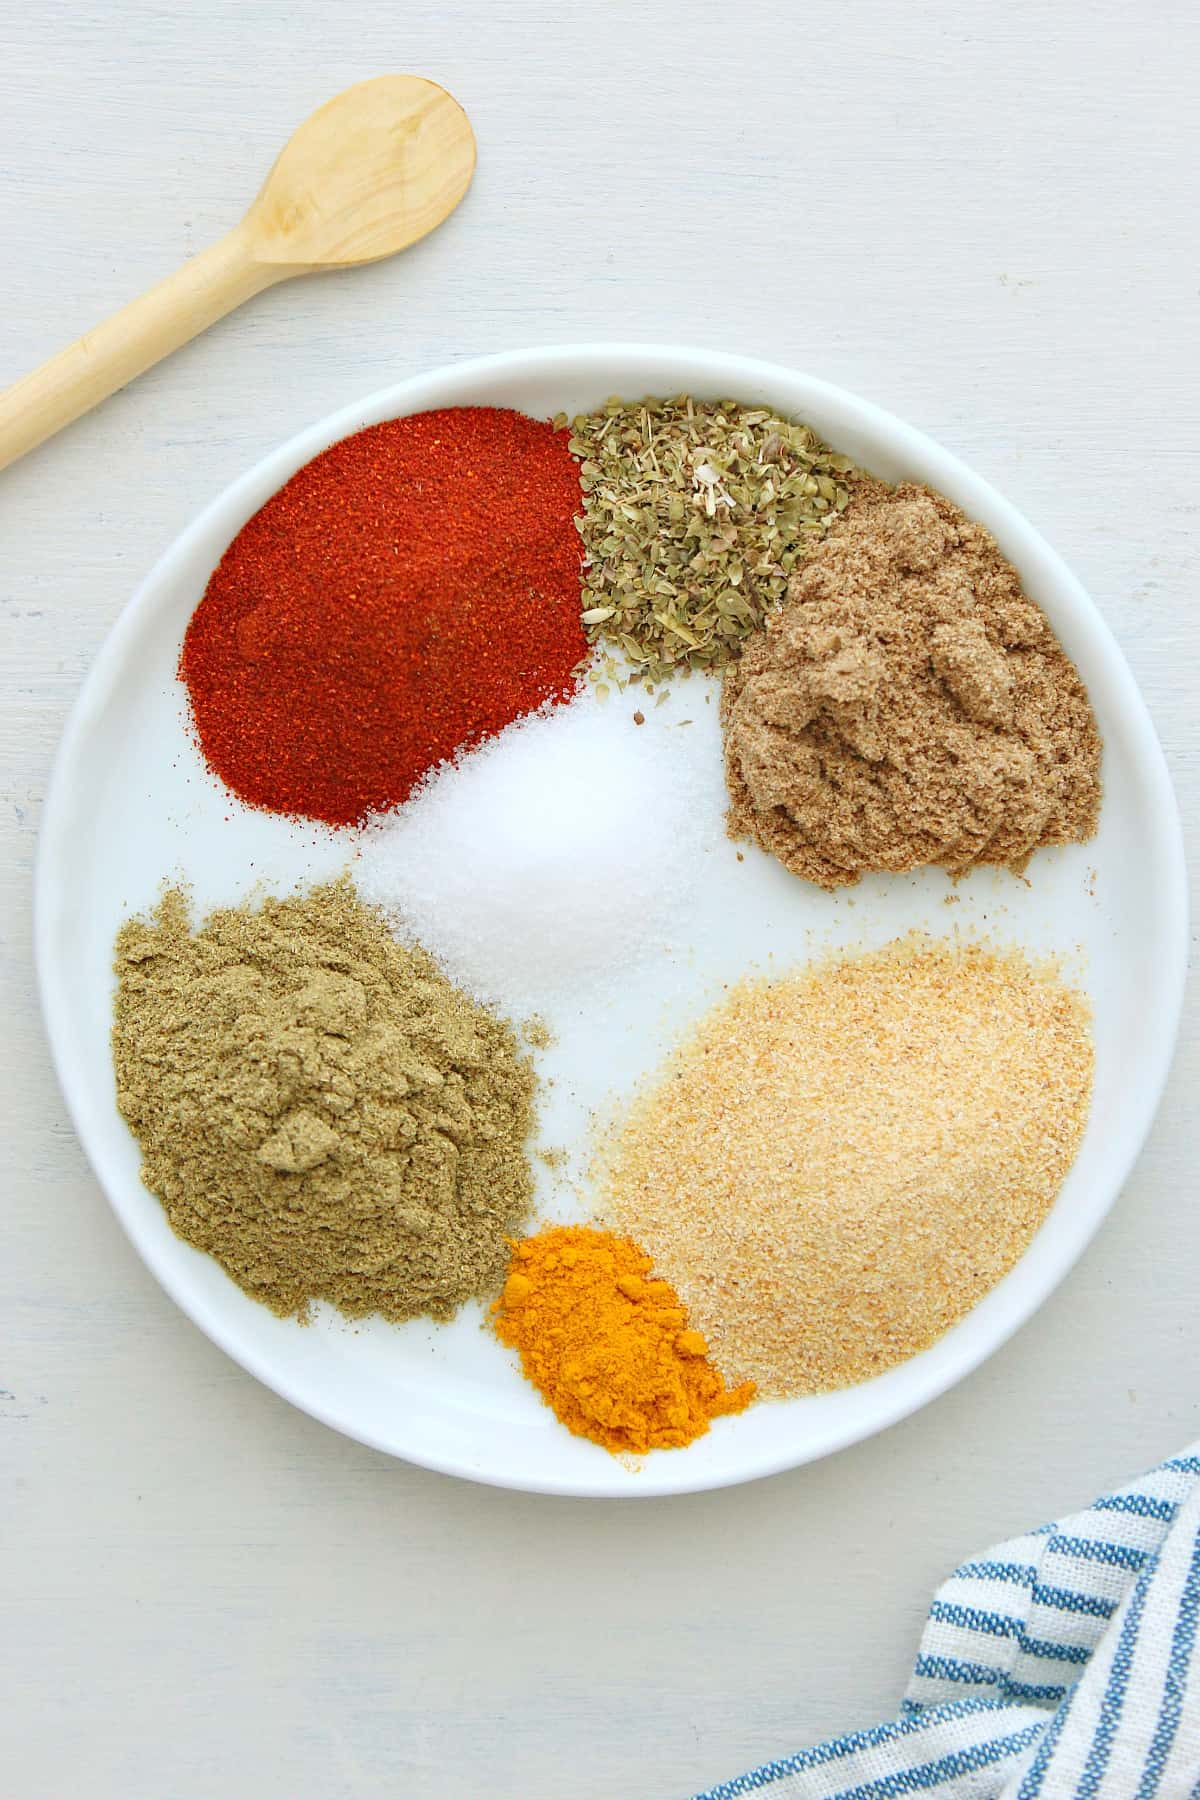 sazon seasoning ingredients Sazon Seasoning Recipe